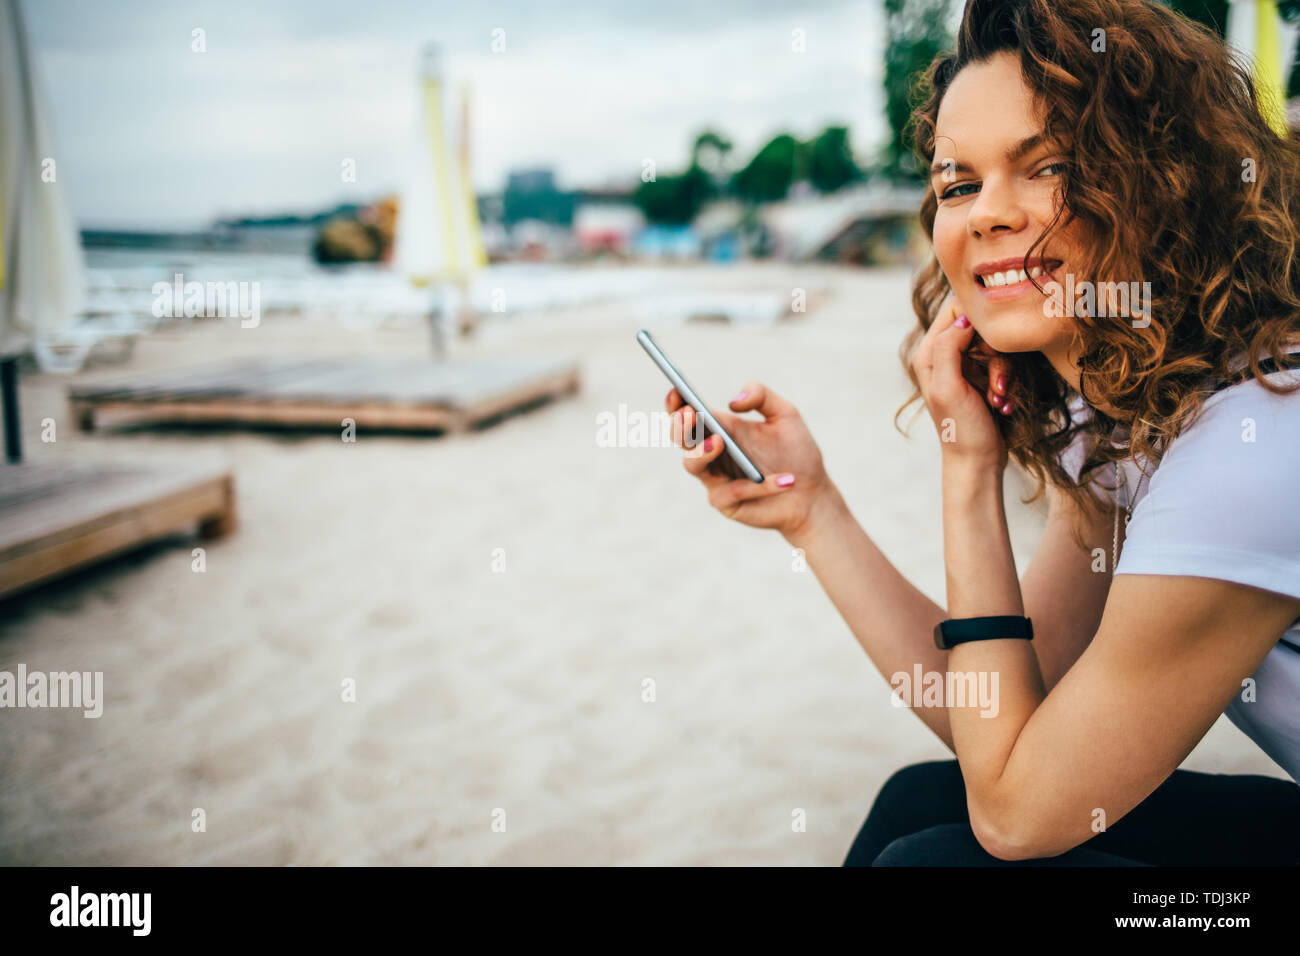 Joyful female using mobile device sitting outdoors on sand  beach near sea folded umbrellas and sun loungers. Cheerful young woman smiling looking at  - Stock Image